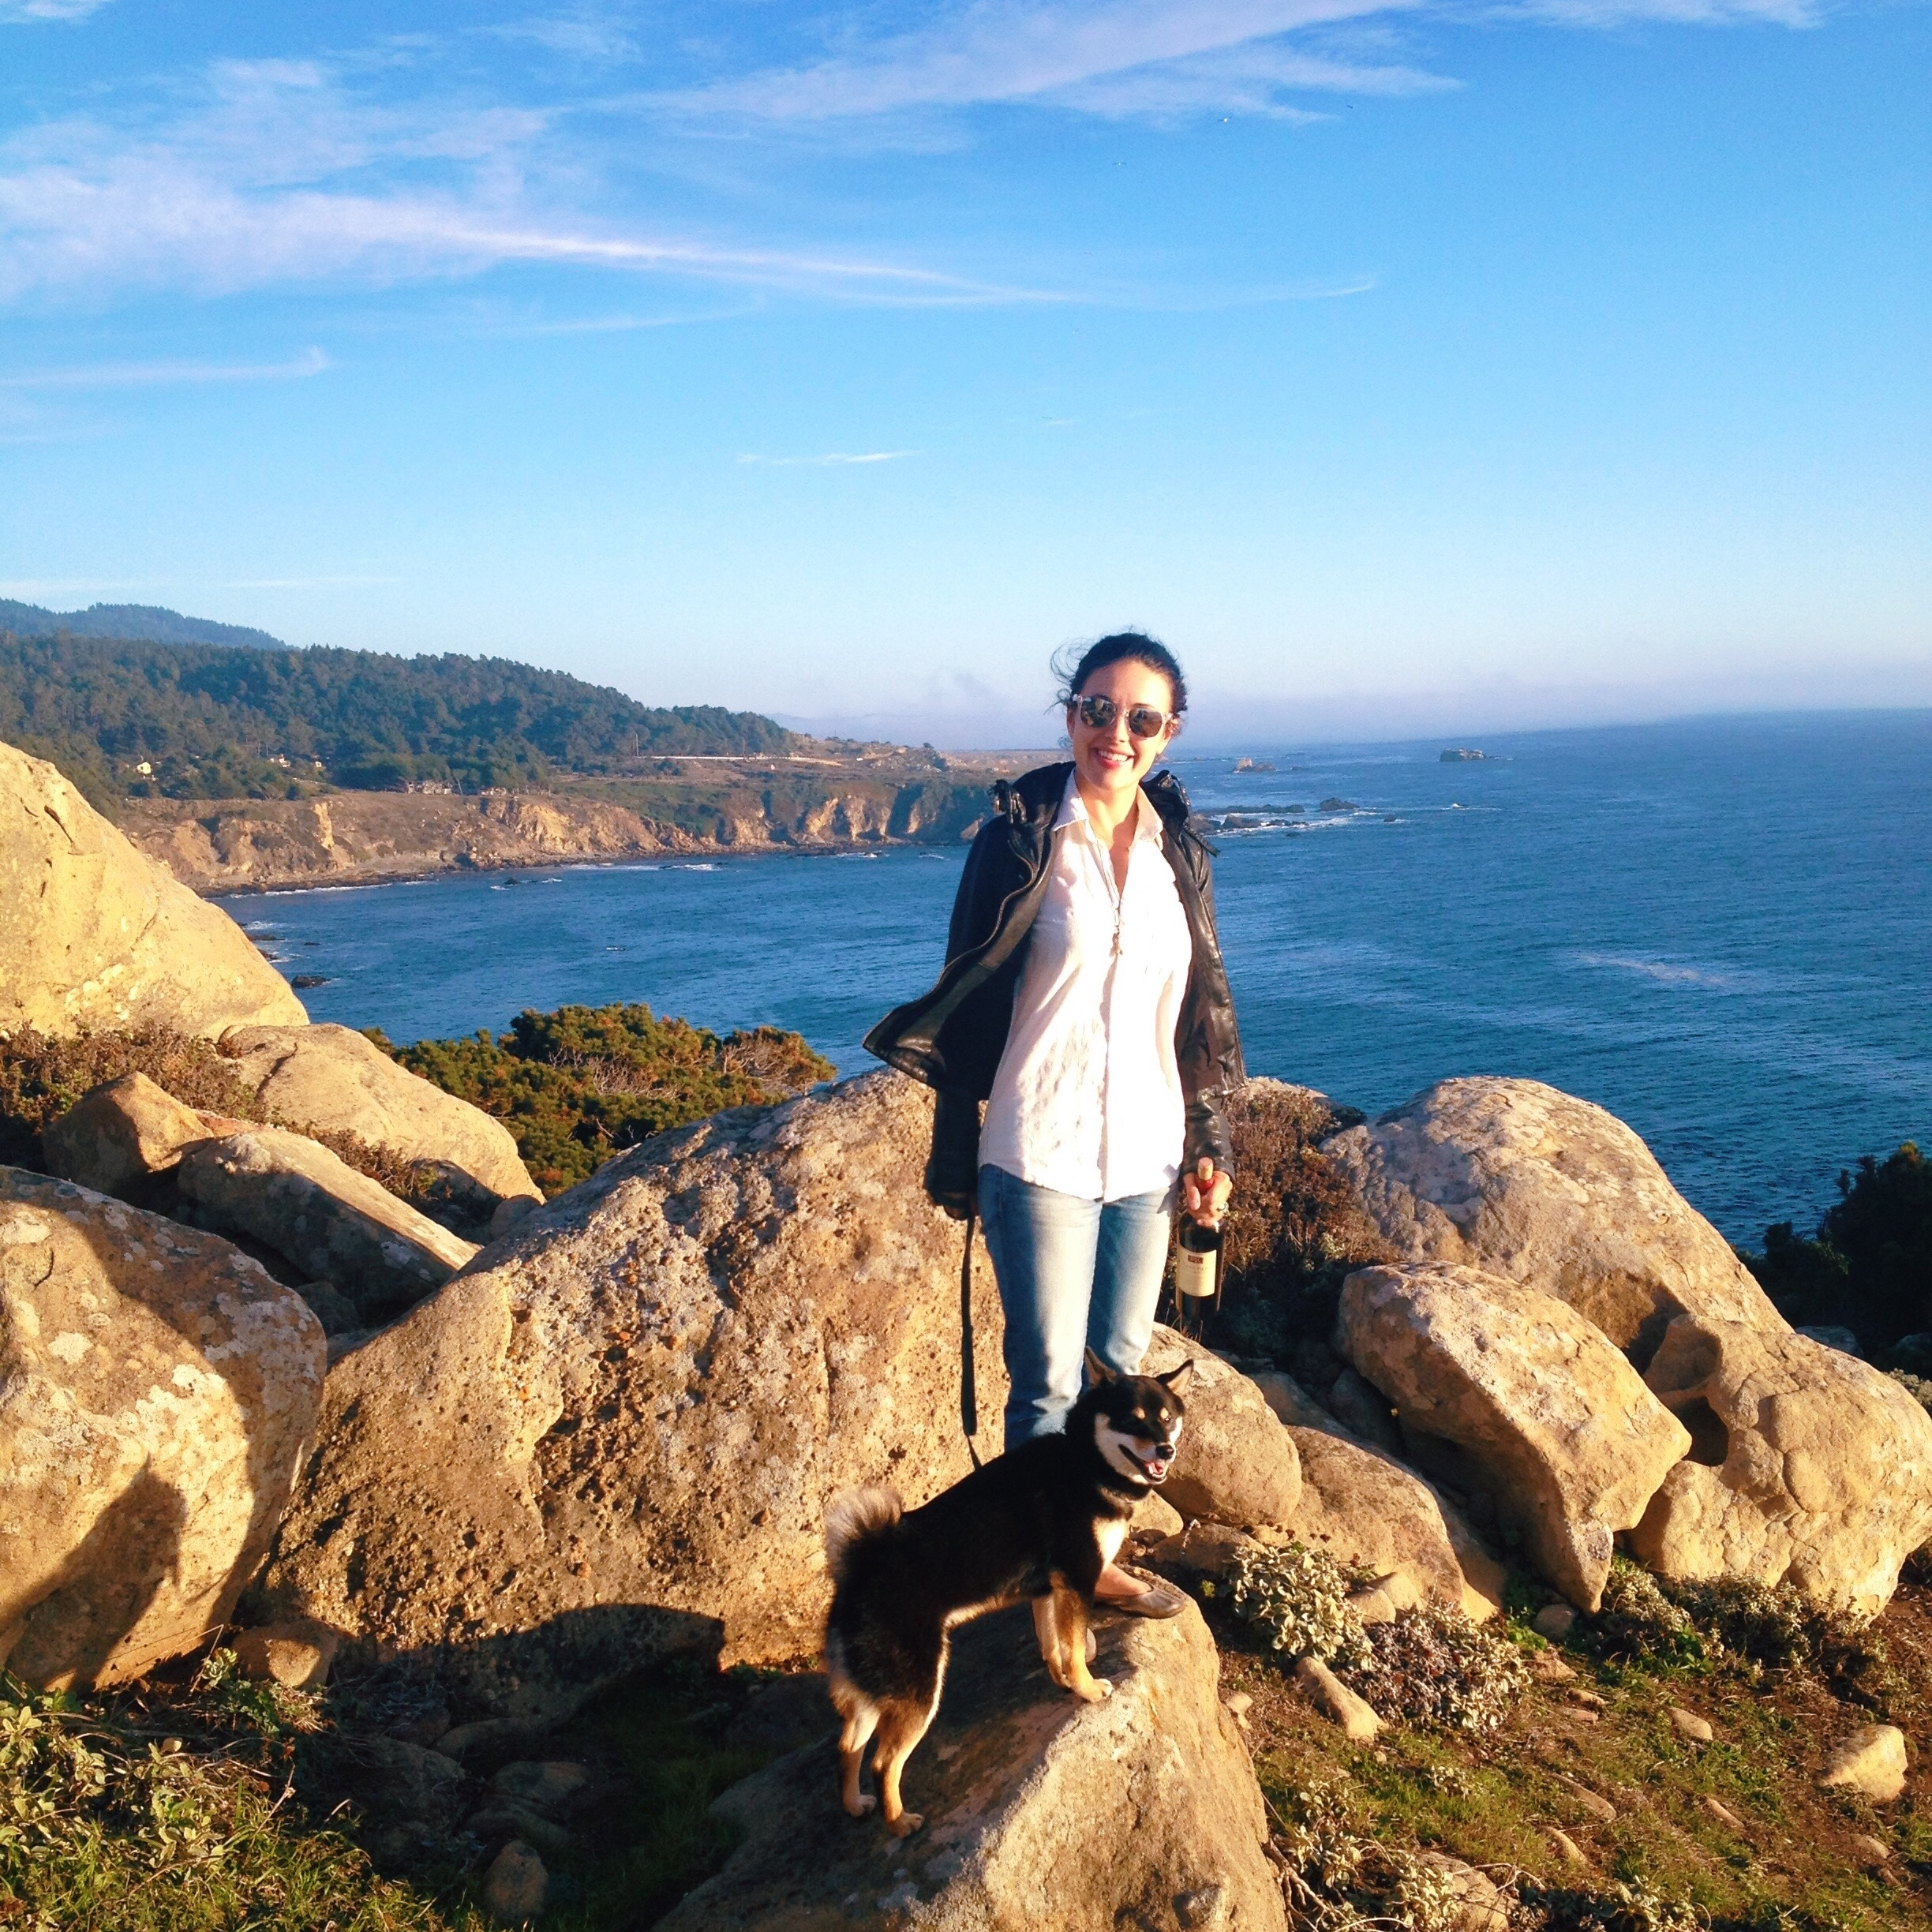 The California coast: Favorite vacation spot